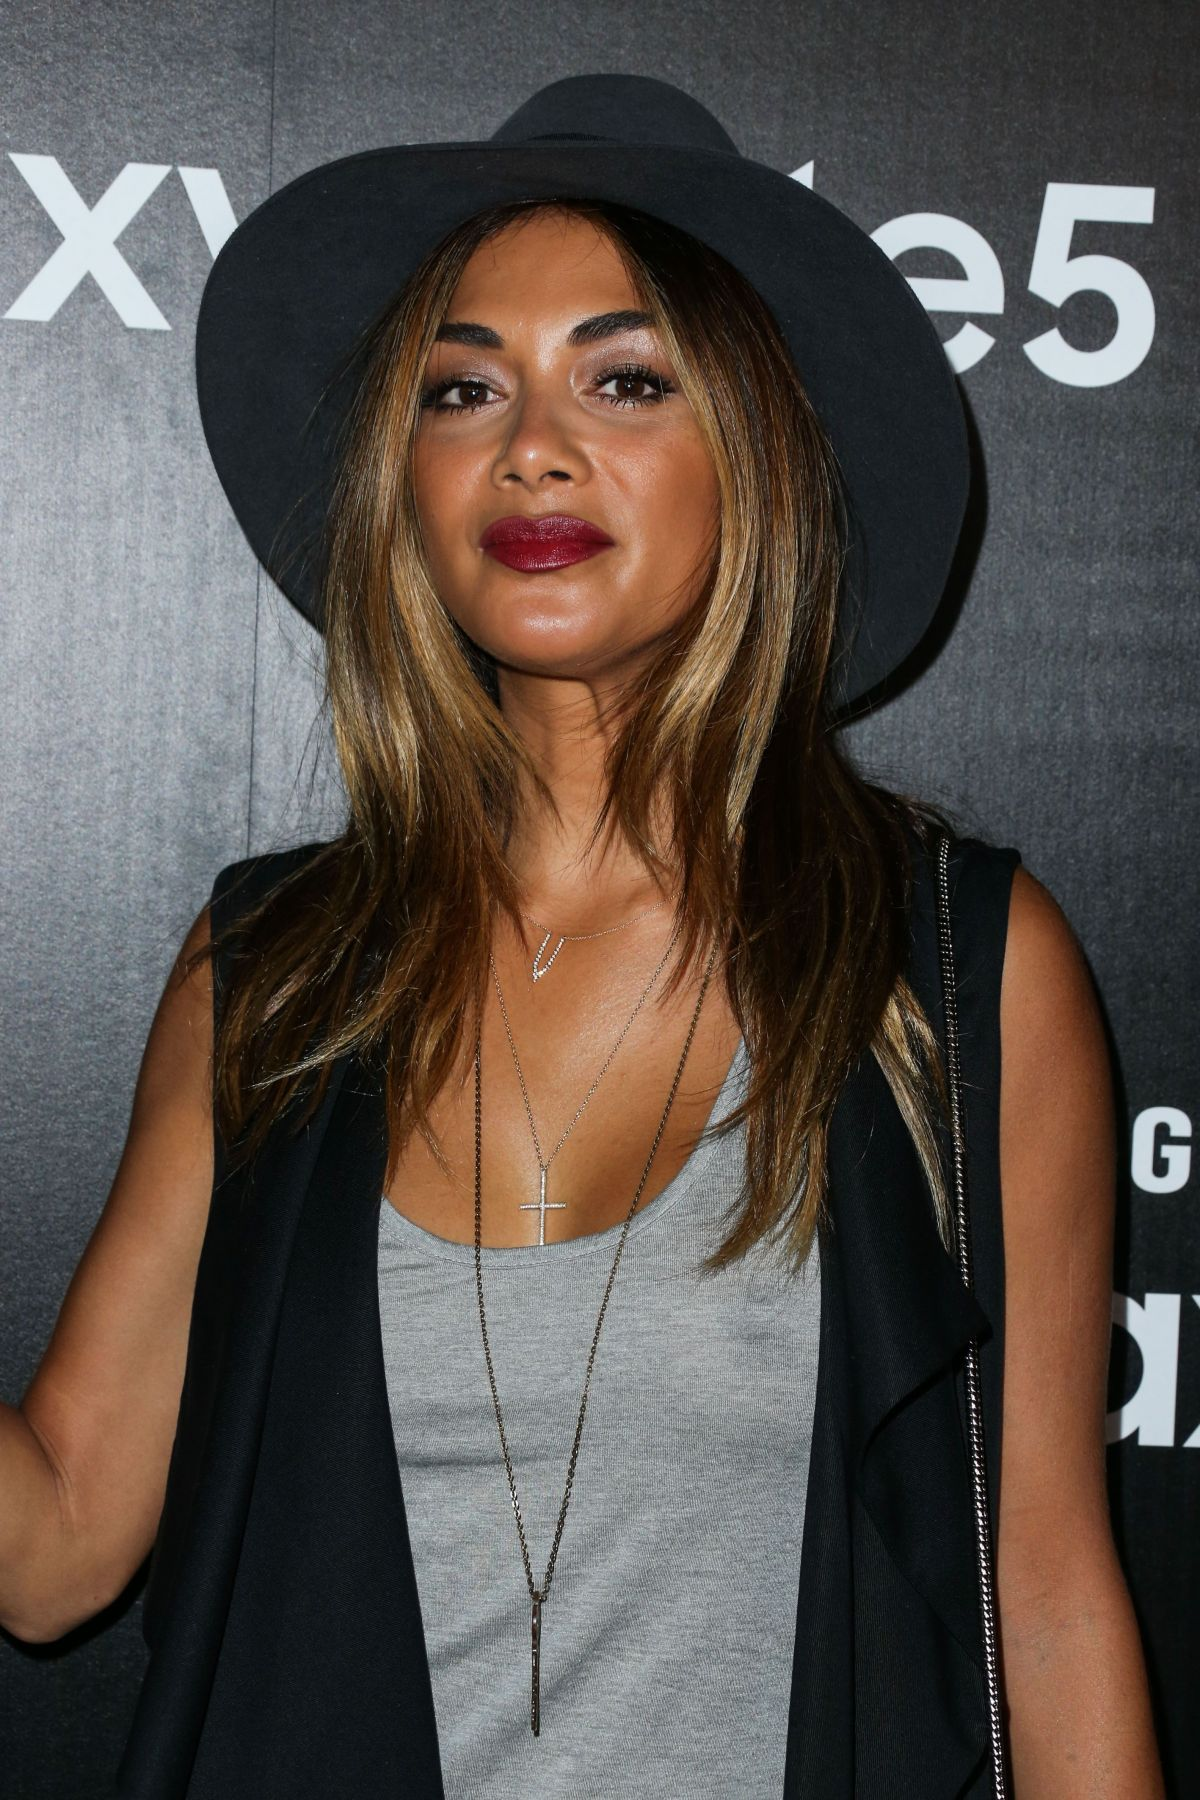 NICOLE SCHERZINGER at Samsung Galaxy S6 Edge+ and Note 5 Launch in ...